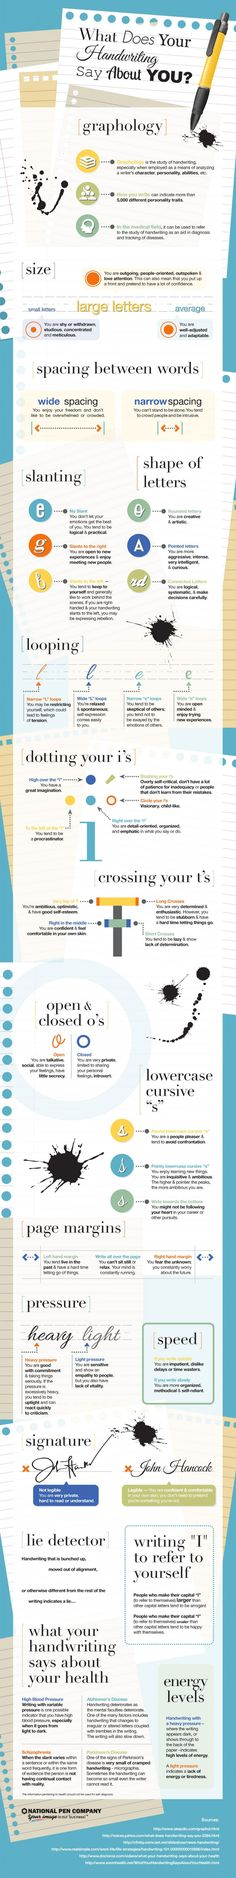 What Your Handwriting May Reveal About Your Confidence, Creativity and Health (Infographic)